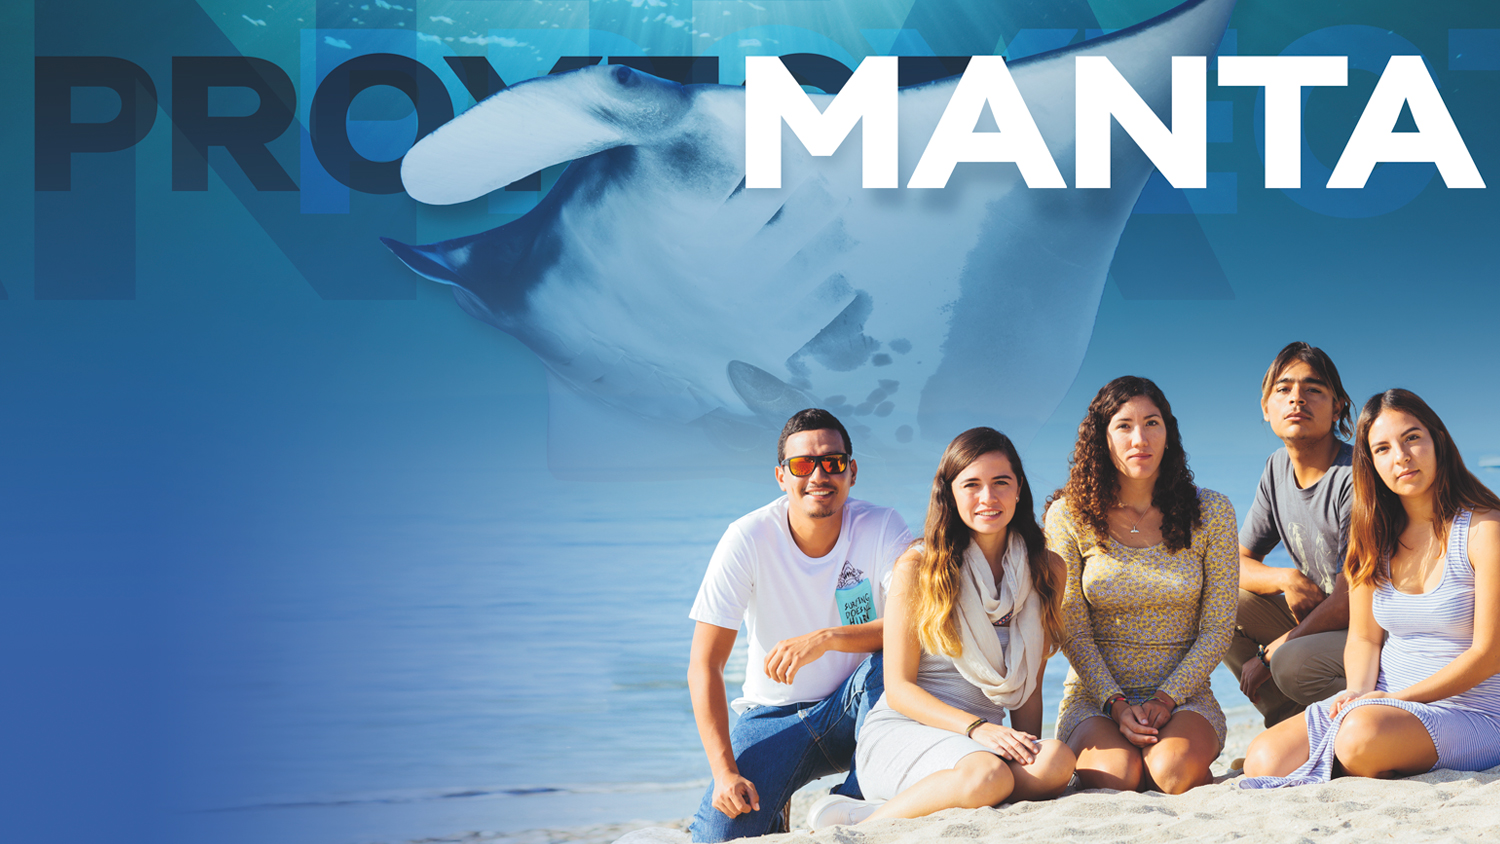 Proyecto Manta: The Protection and Conservation of an Ocean Giant